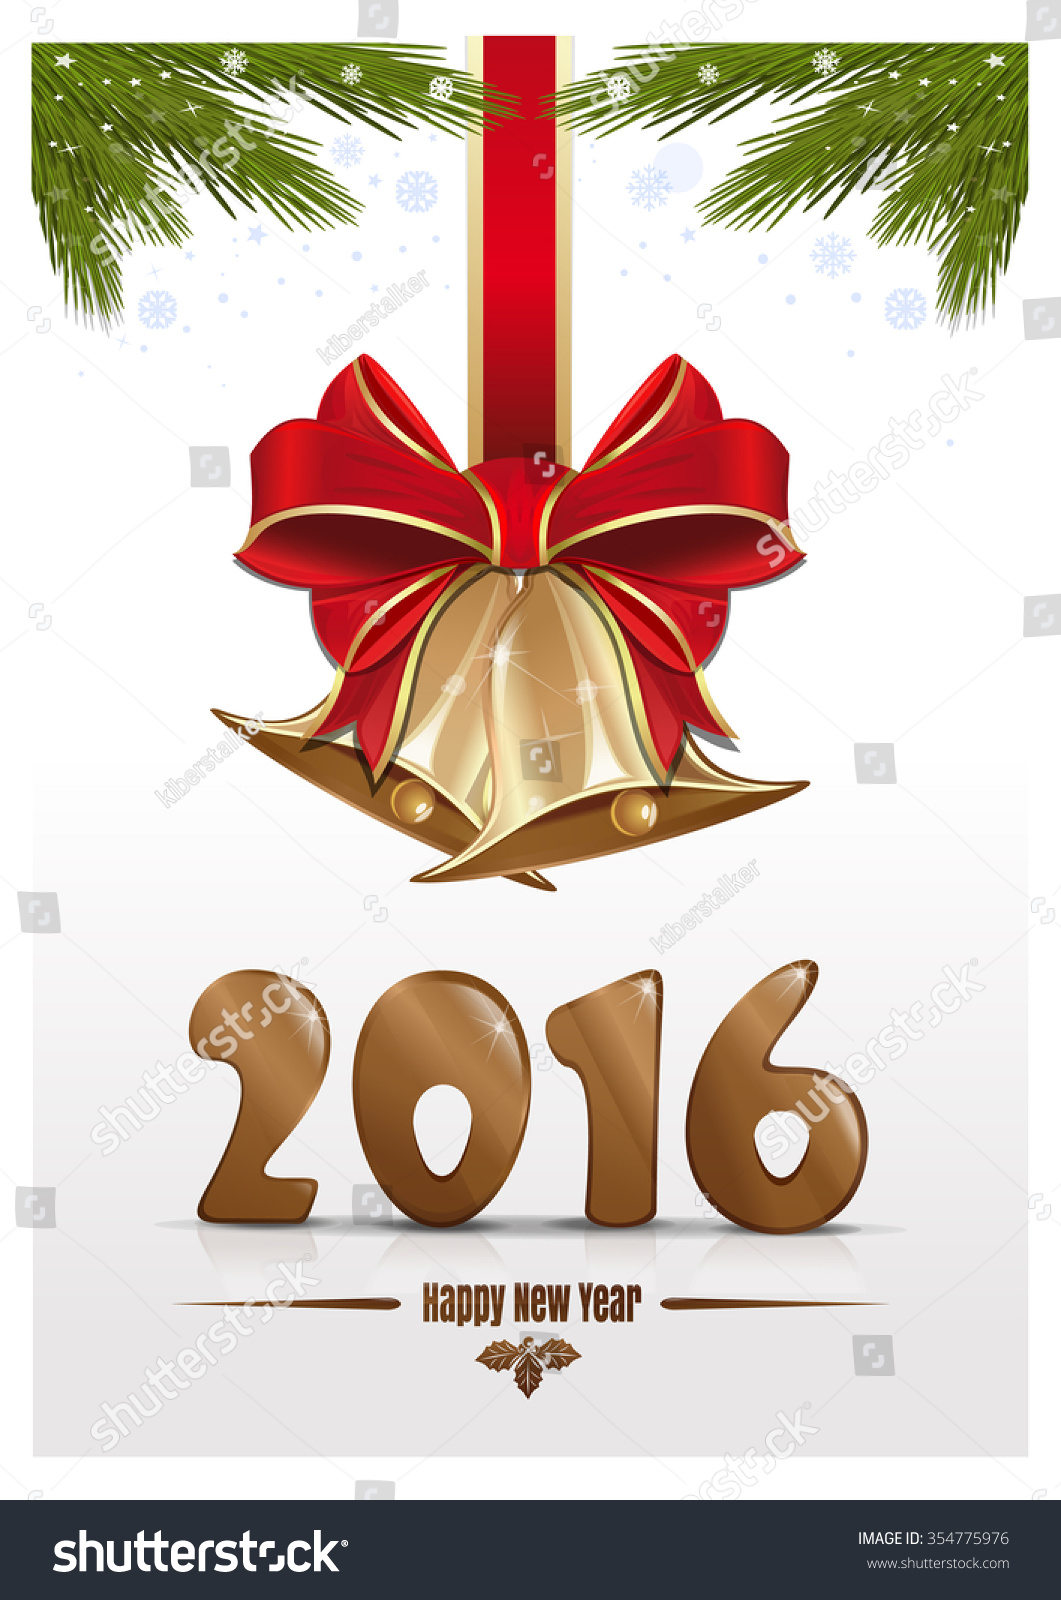 New years bells images happy year free